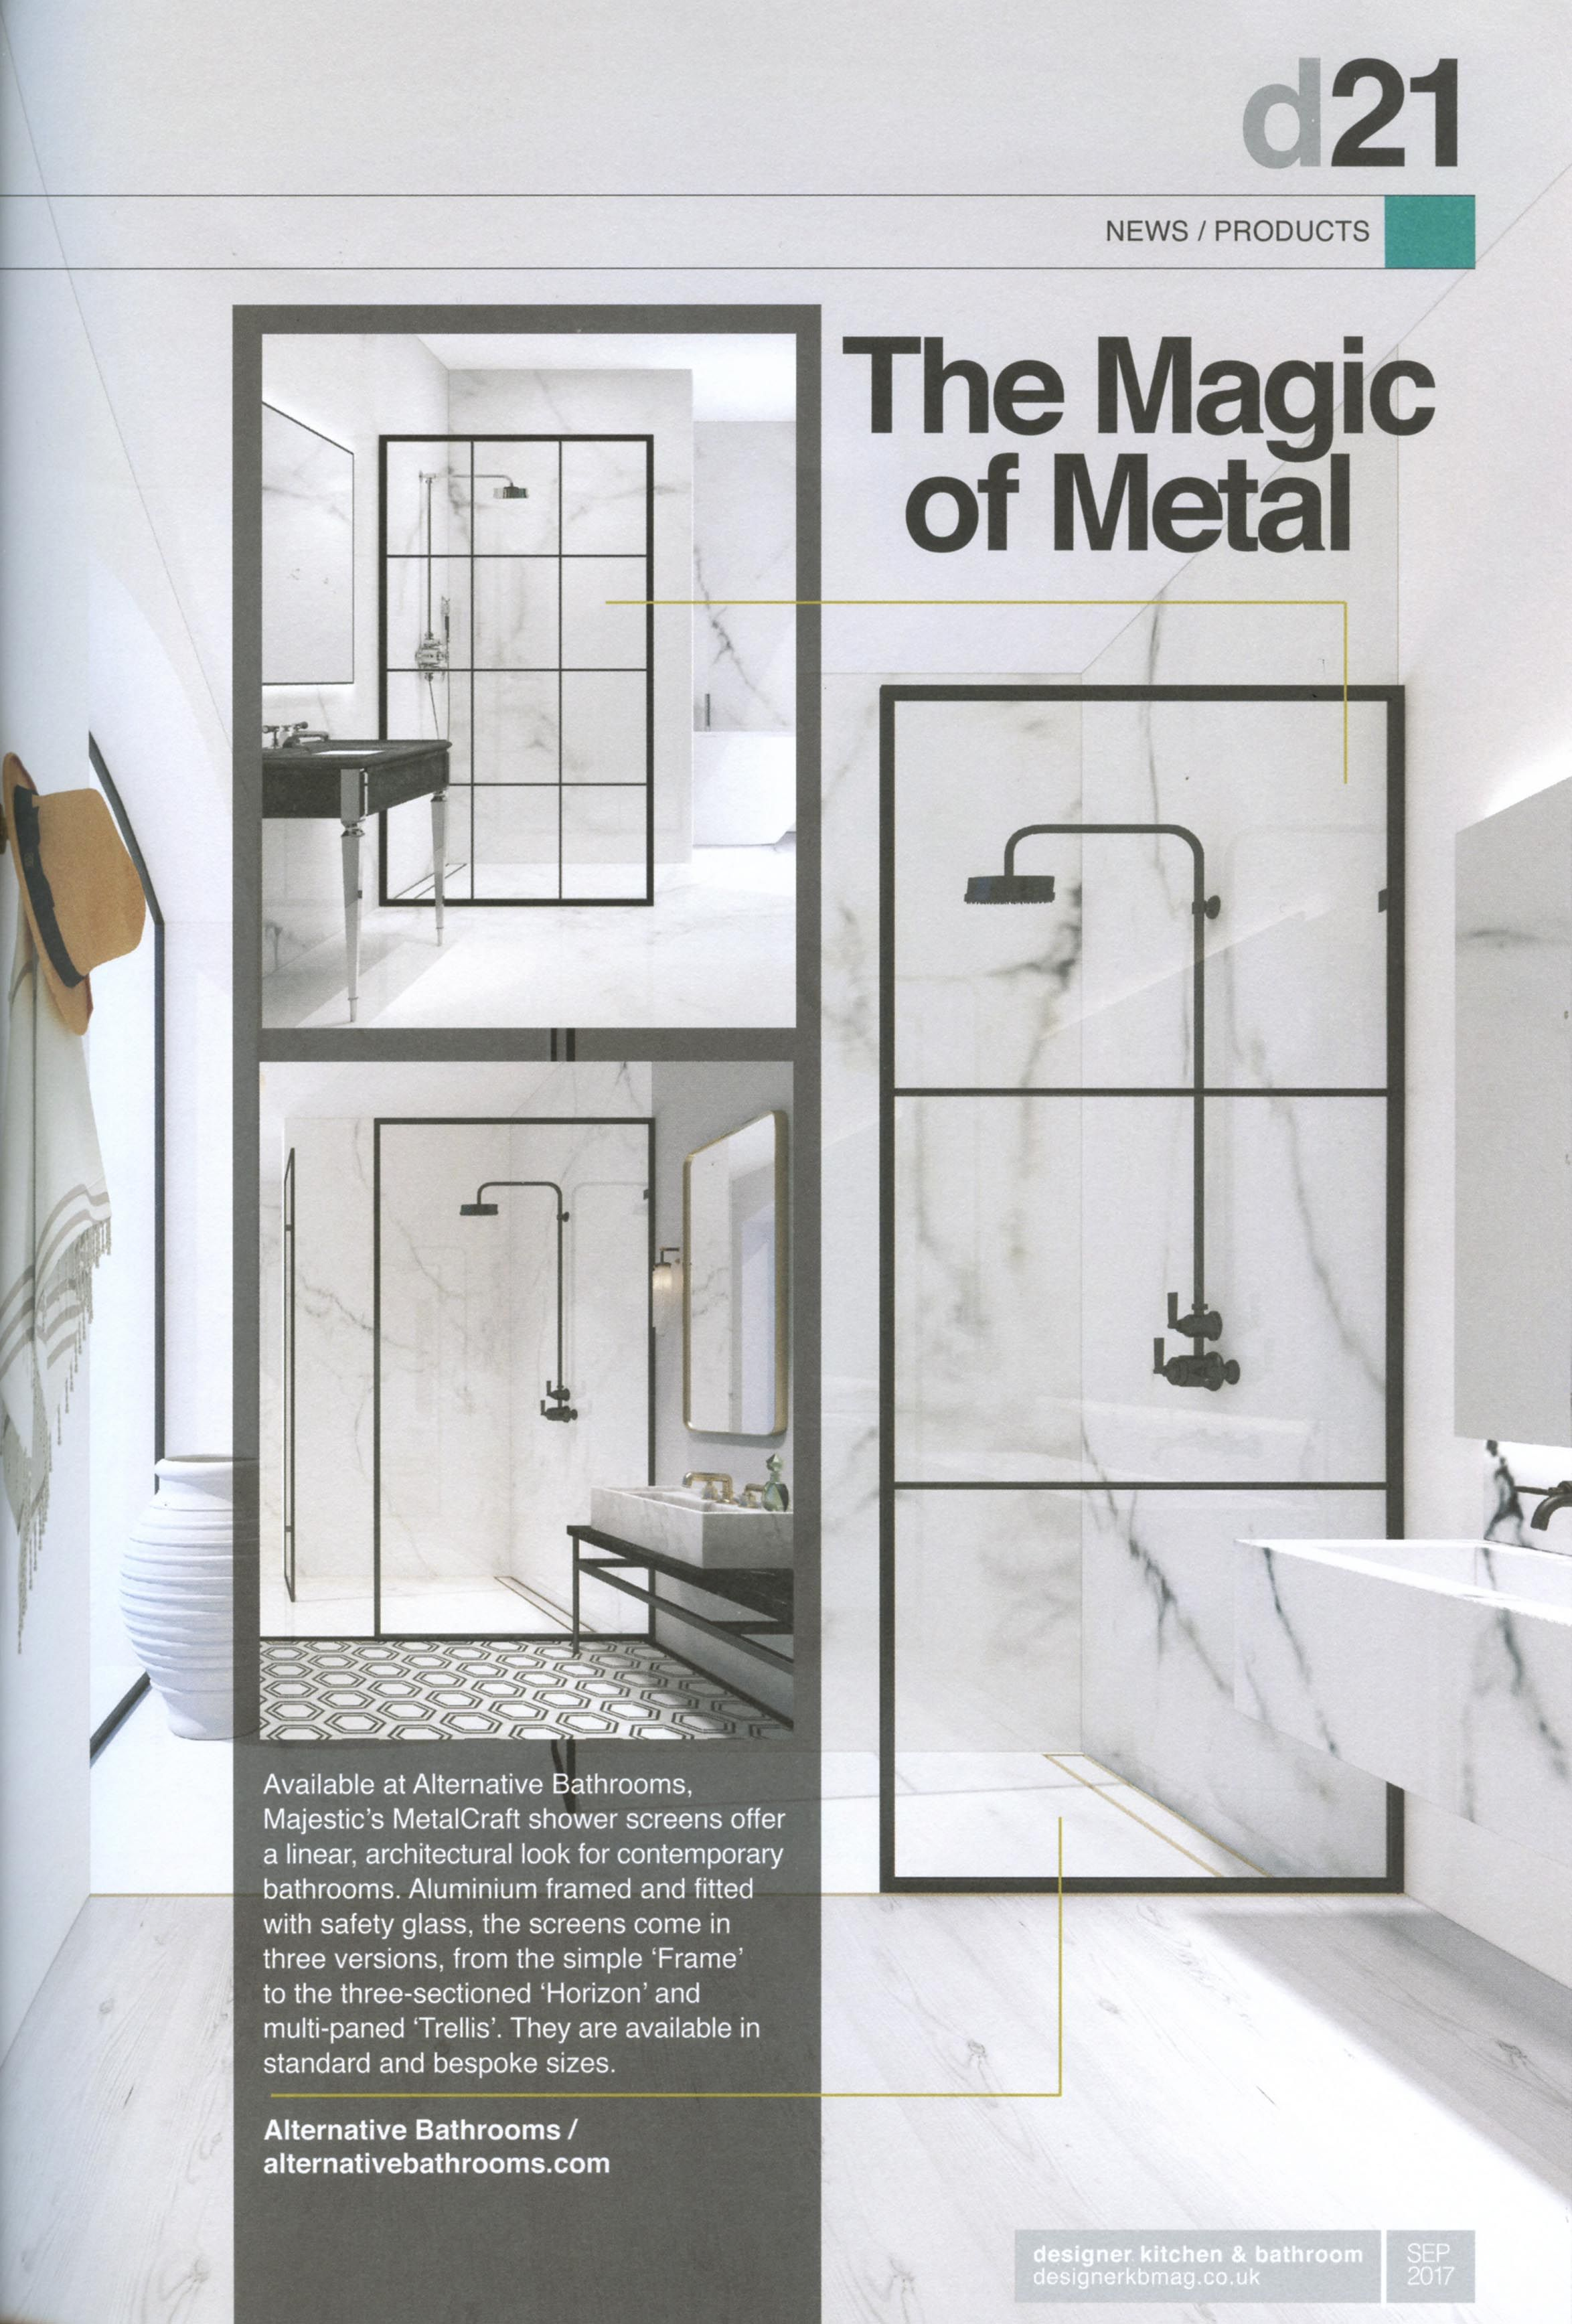 This shower screen, available at Alternative Bathrooms, offers a ...